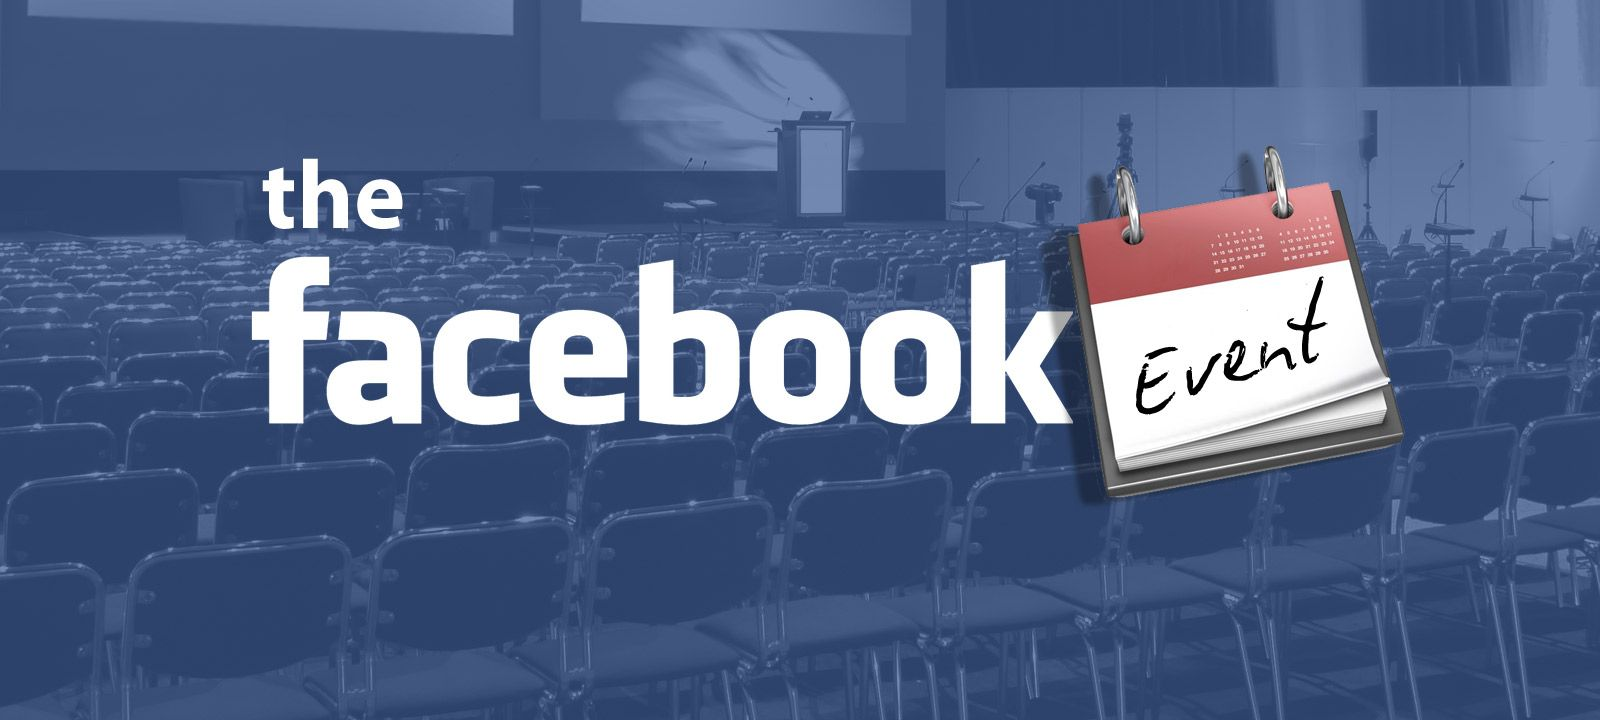 How to Add Facebook Event Photo on your computer